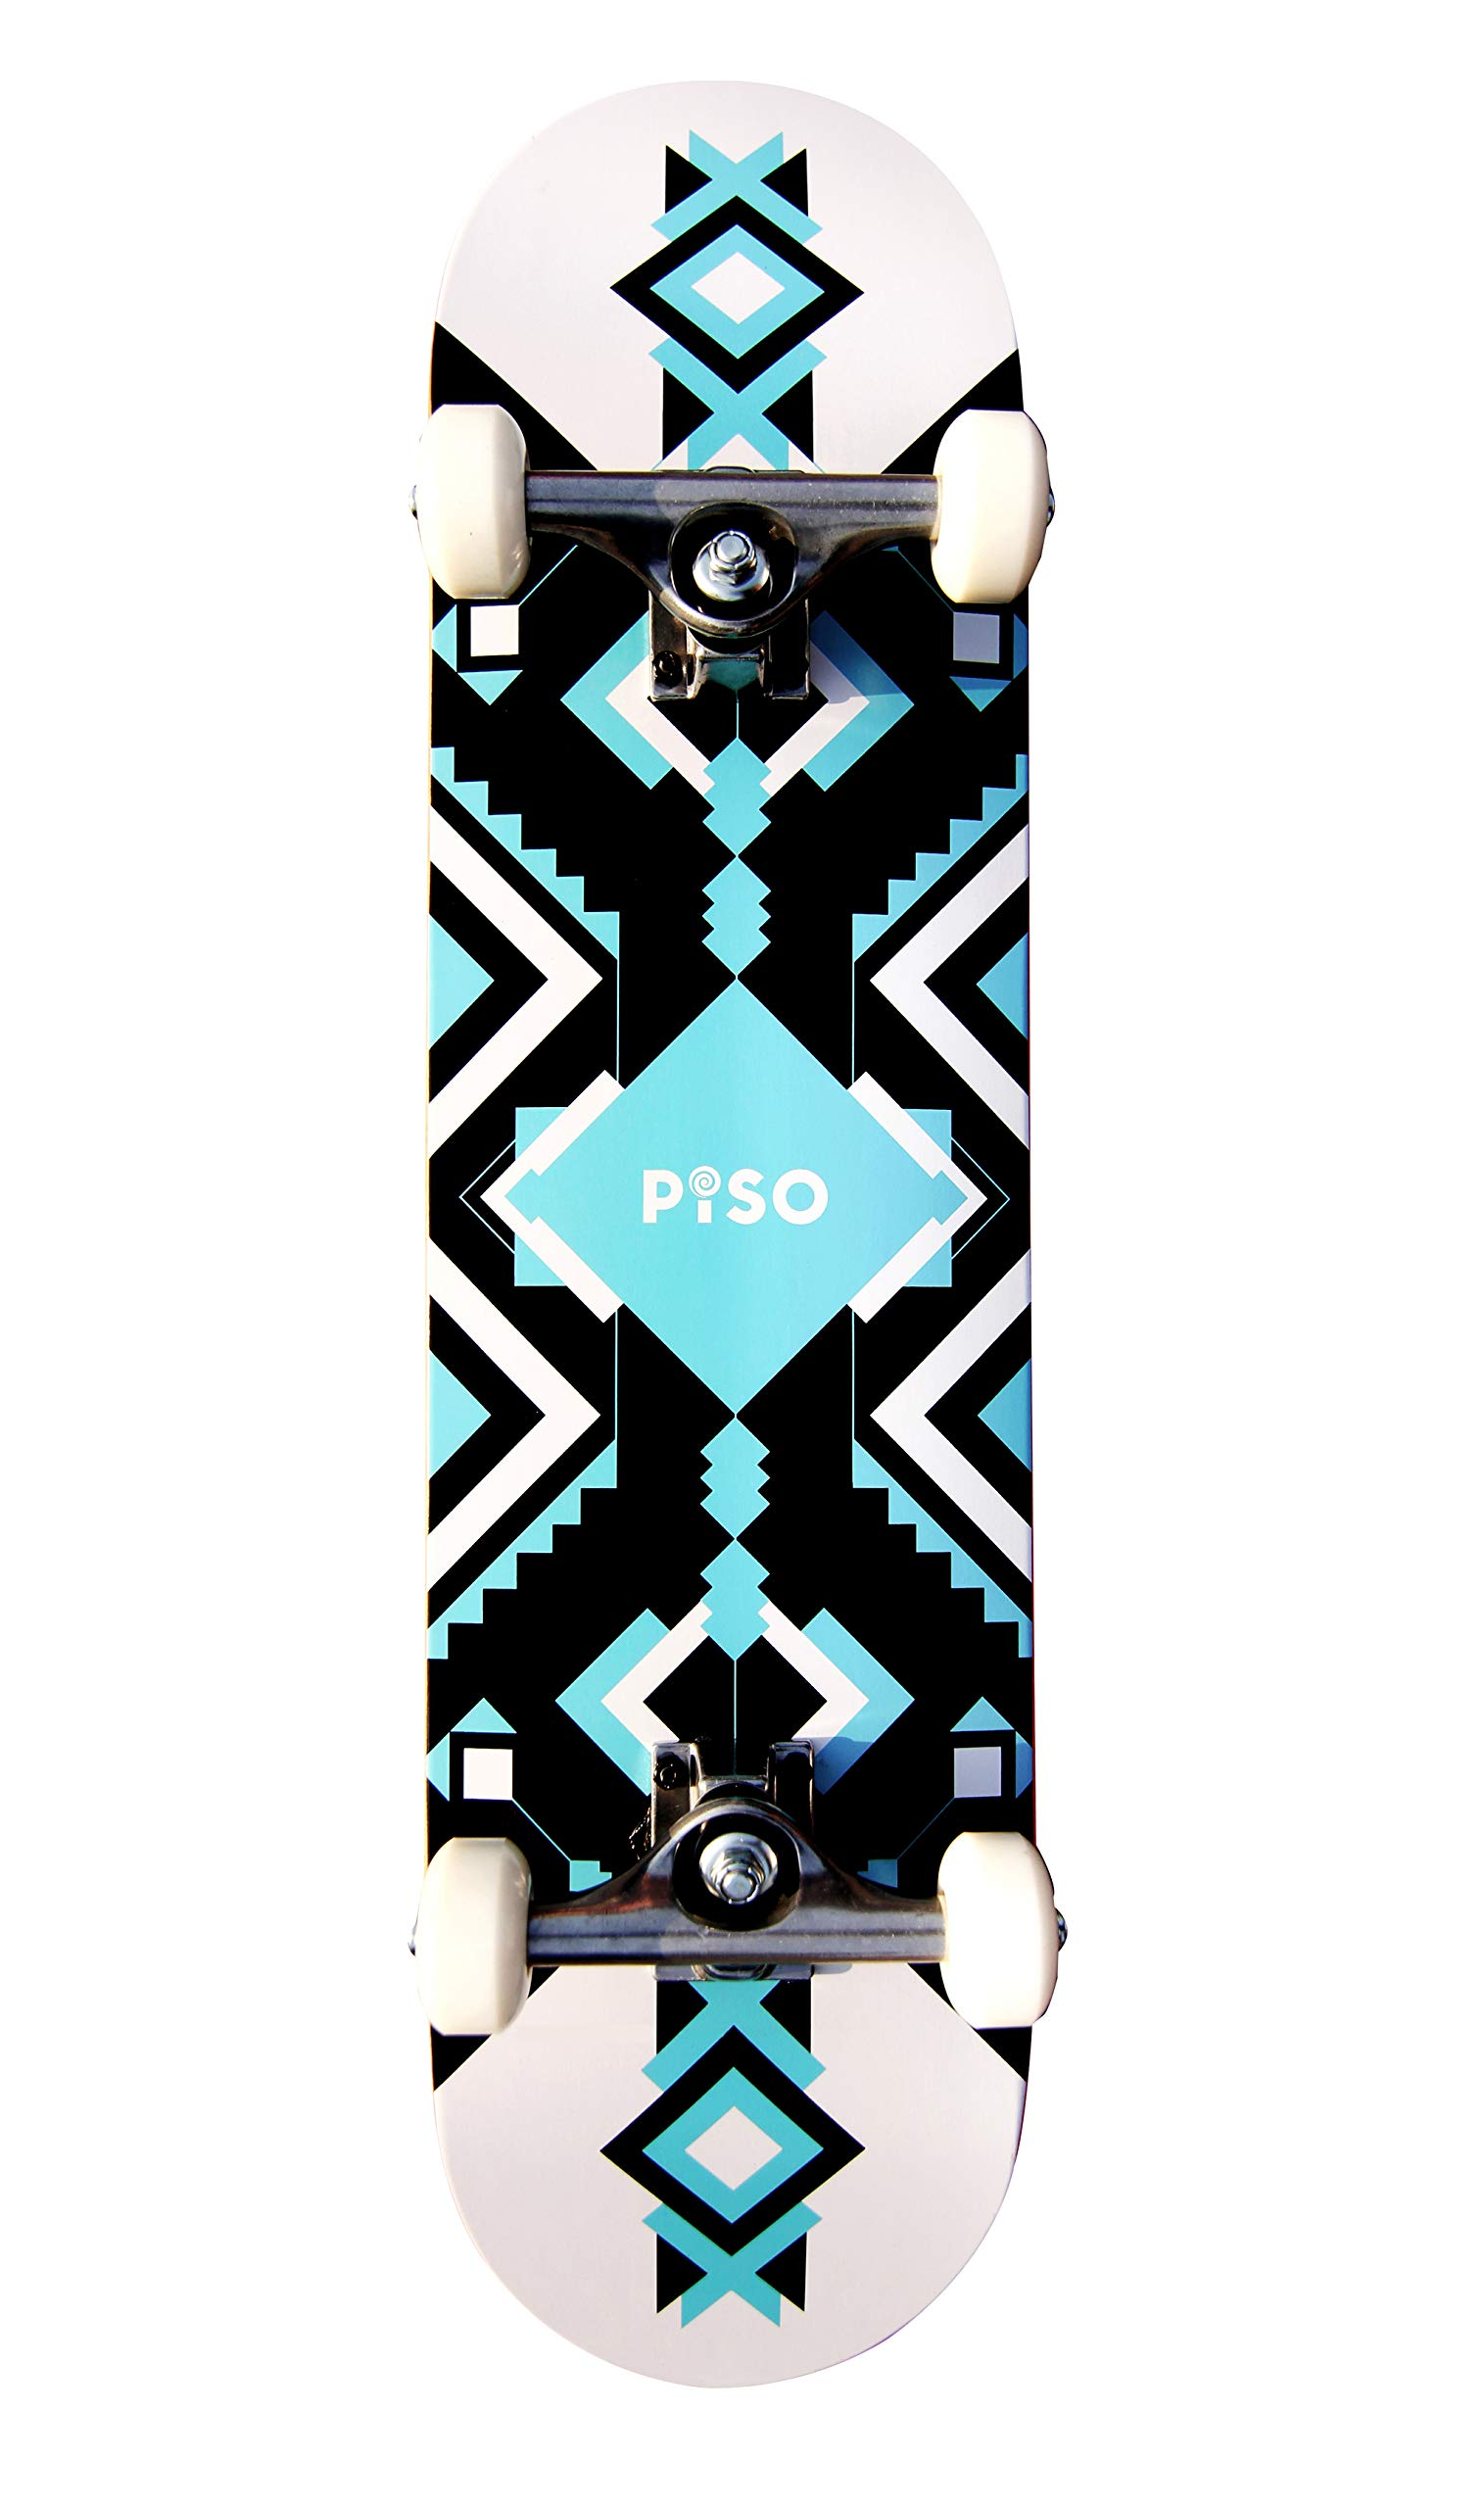 73106b99 Piso Skateboard Complete Dragonfly 7.75in (31.5inx7.75in) product image